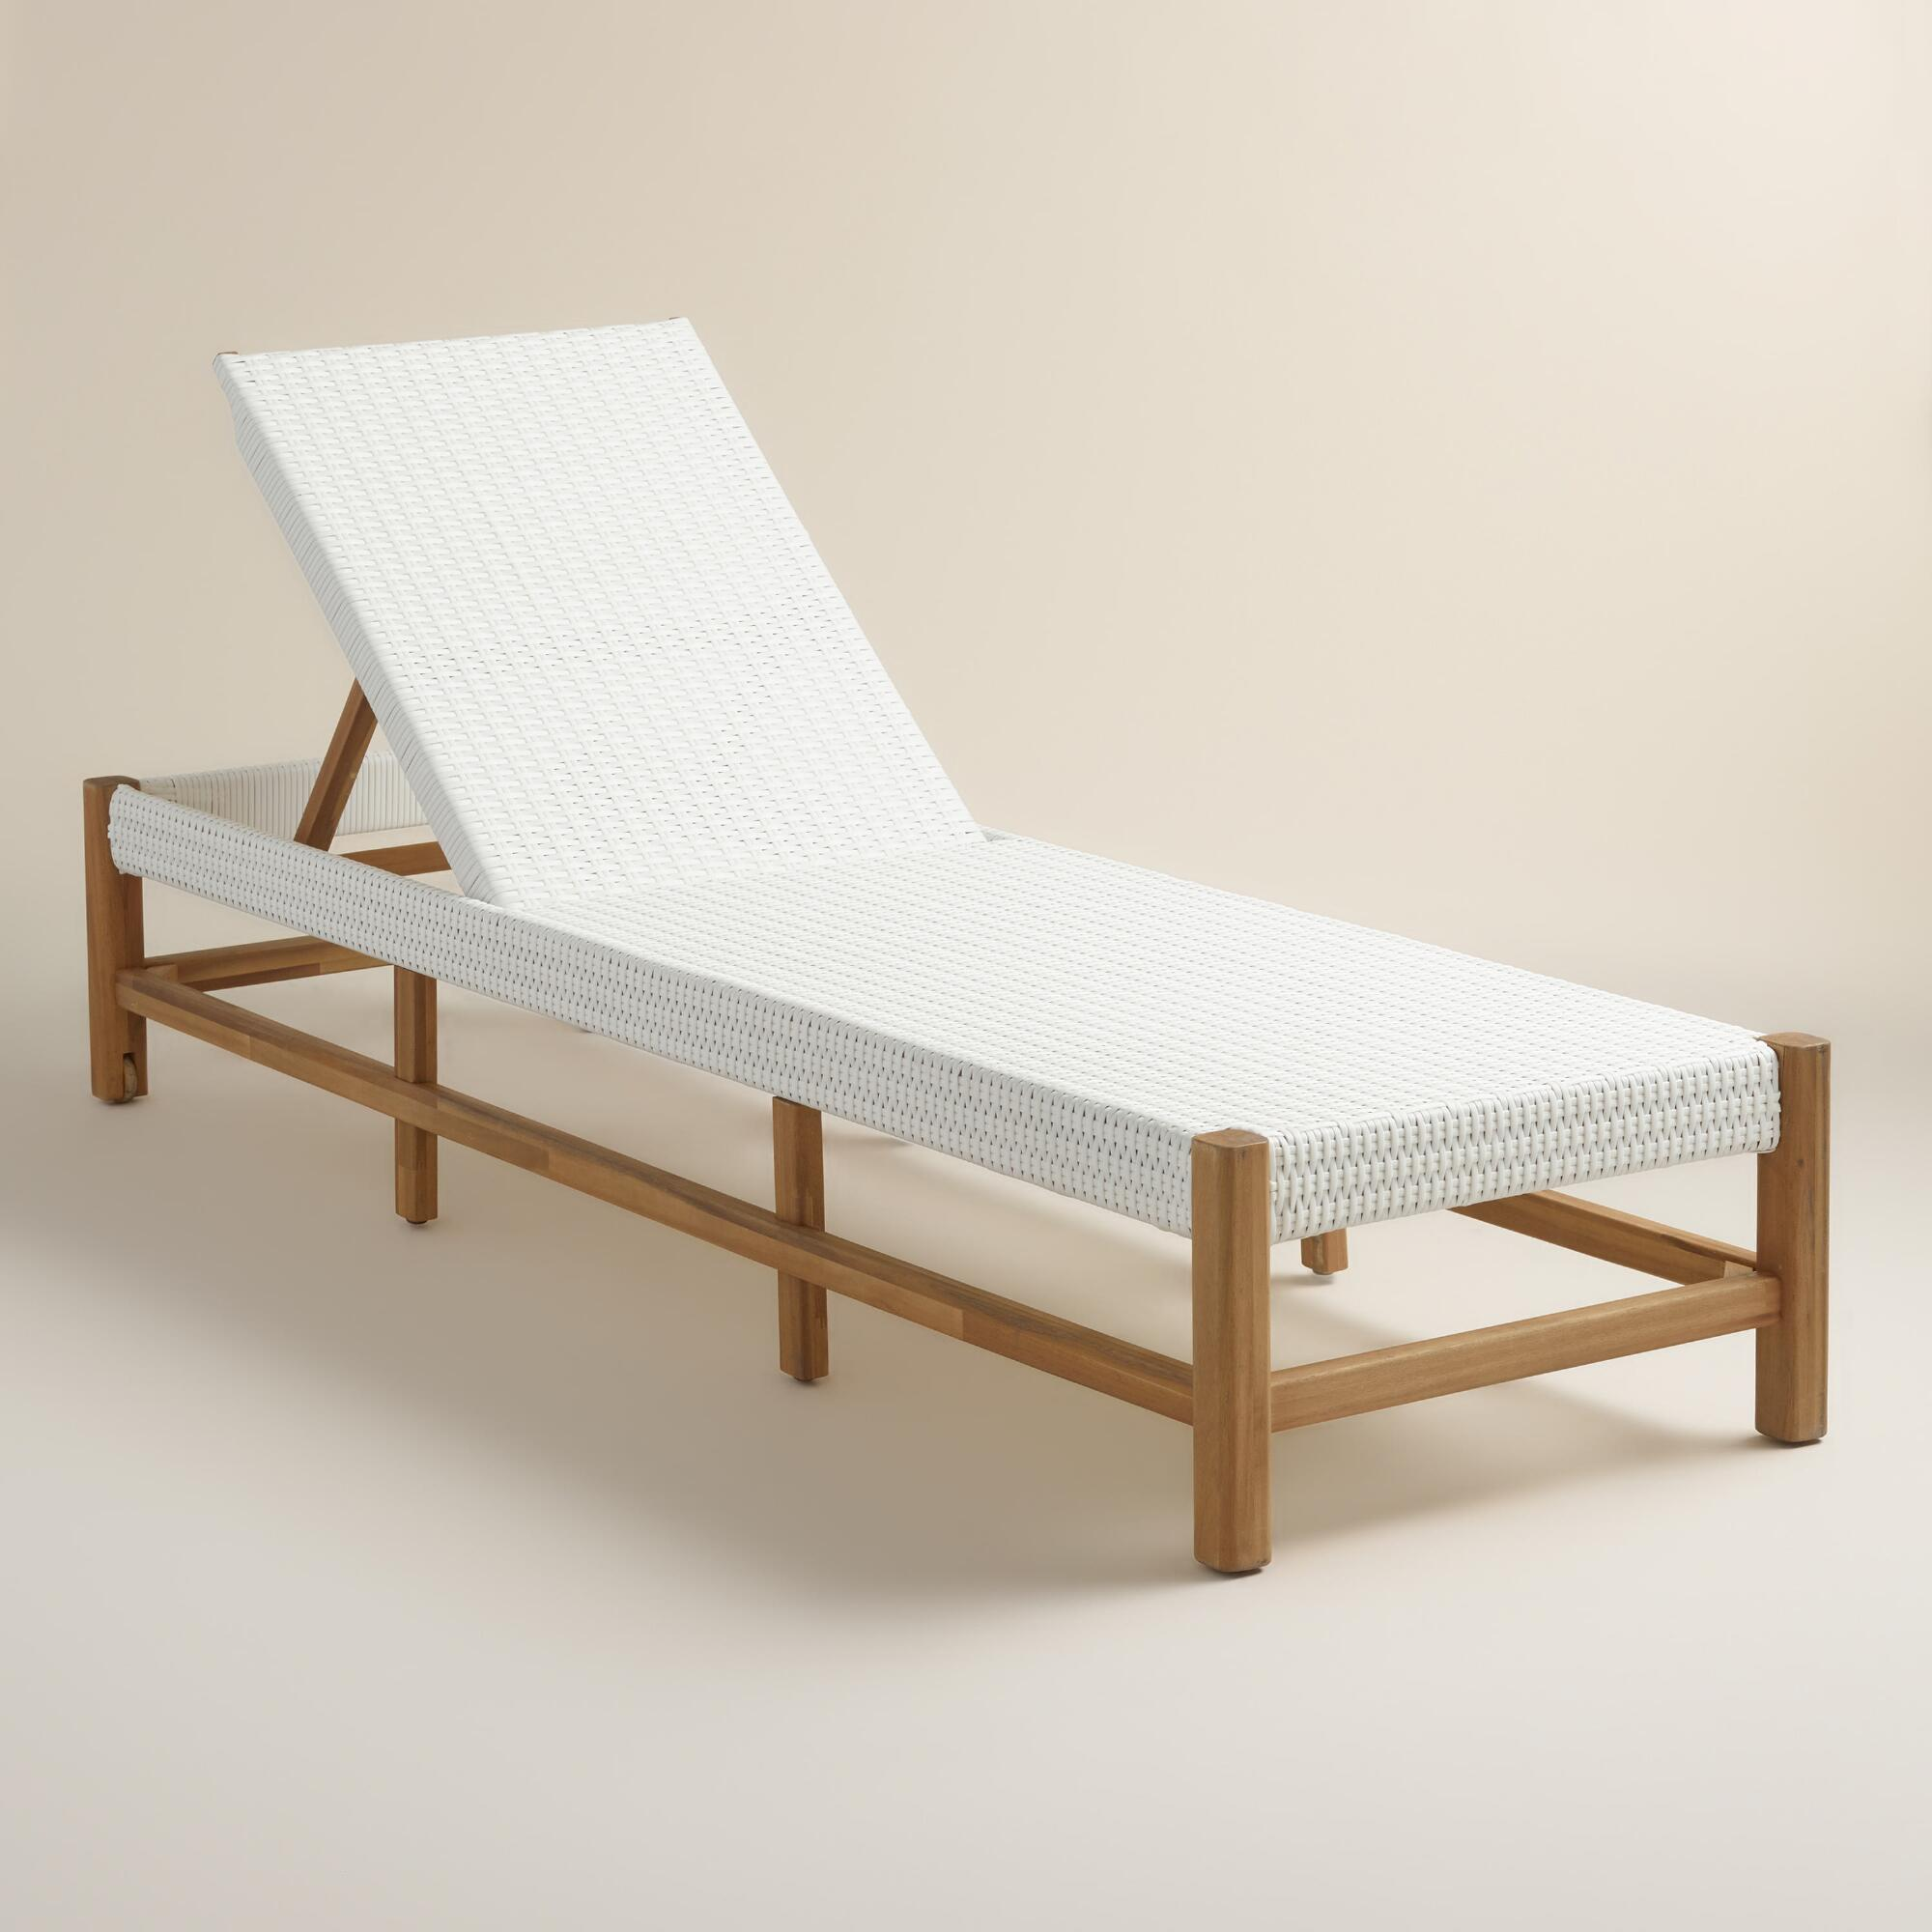 . Wood Sirmione Pool Lounger   World Market